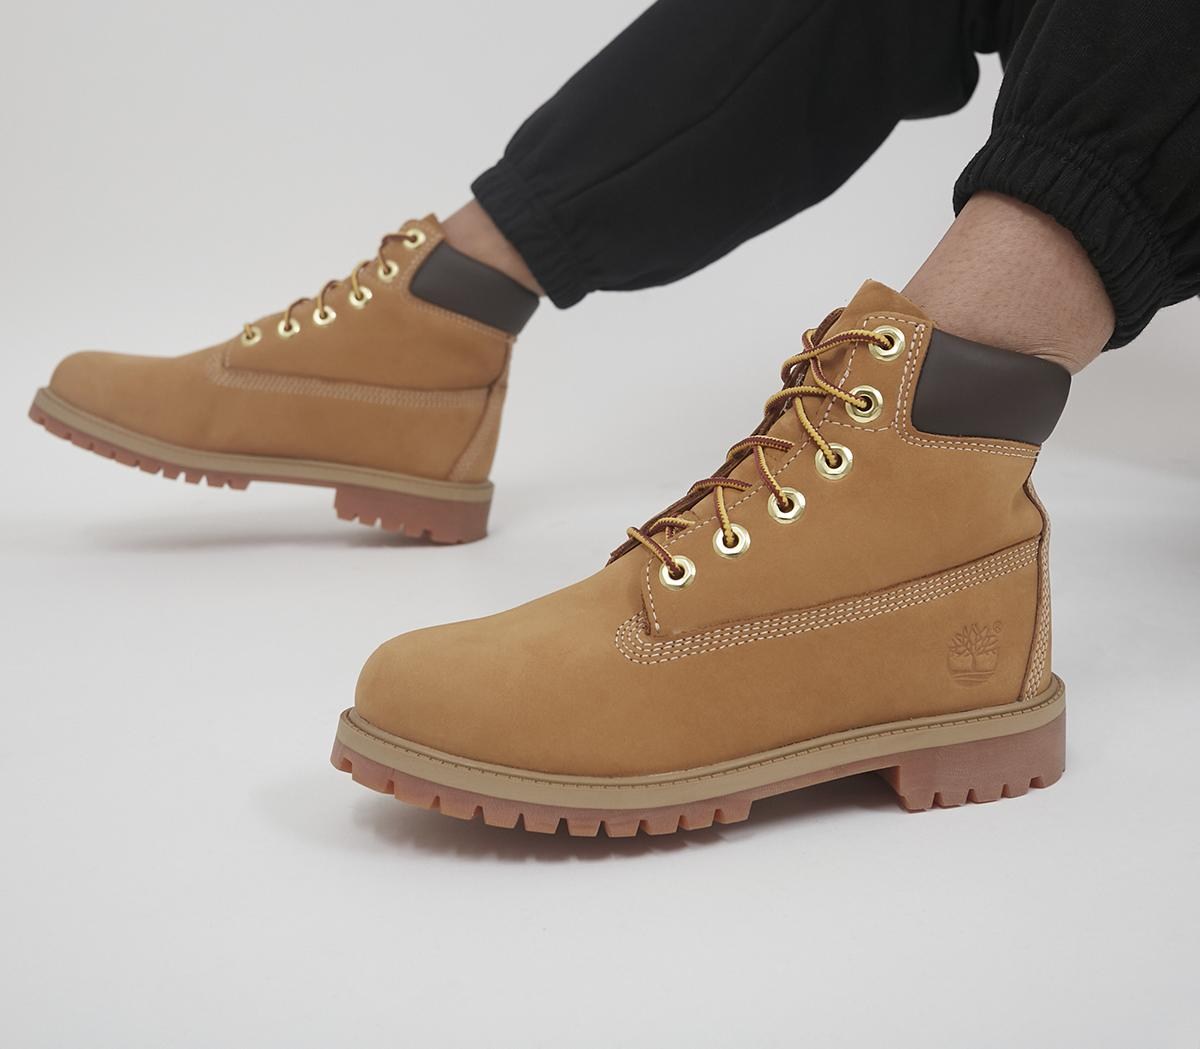 15 Best Fall 2019 images | Timberland, Boots, Timberland shop